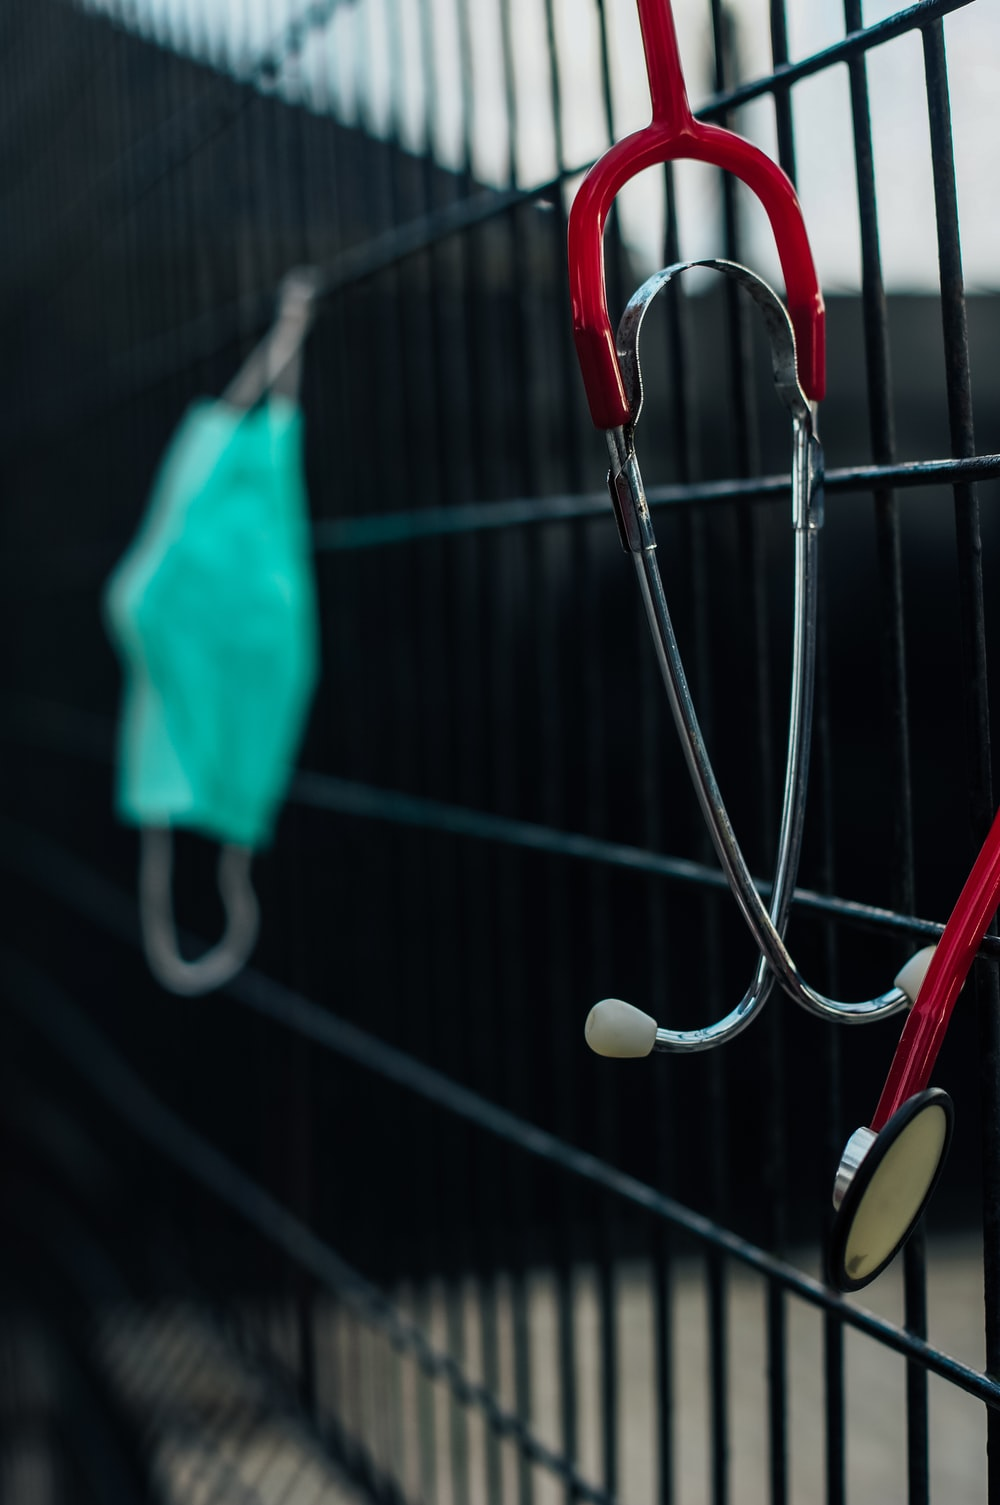 blue and white stethoscope hanging on black metal fence